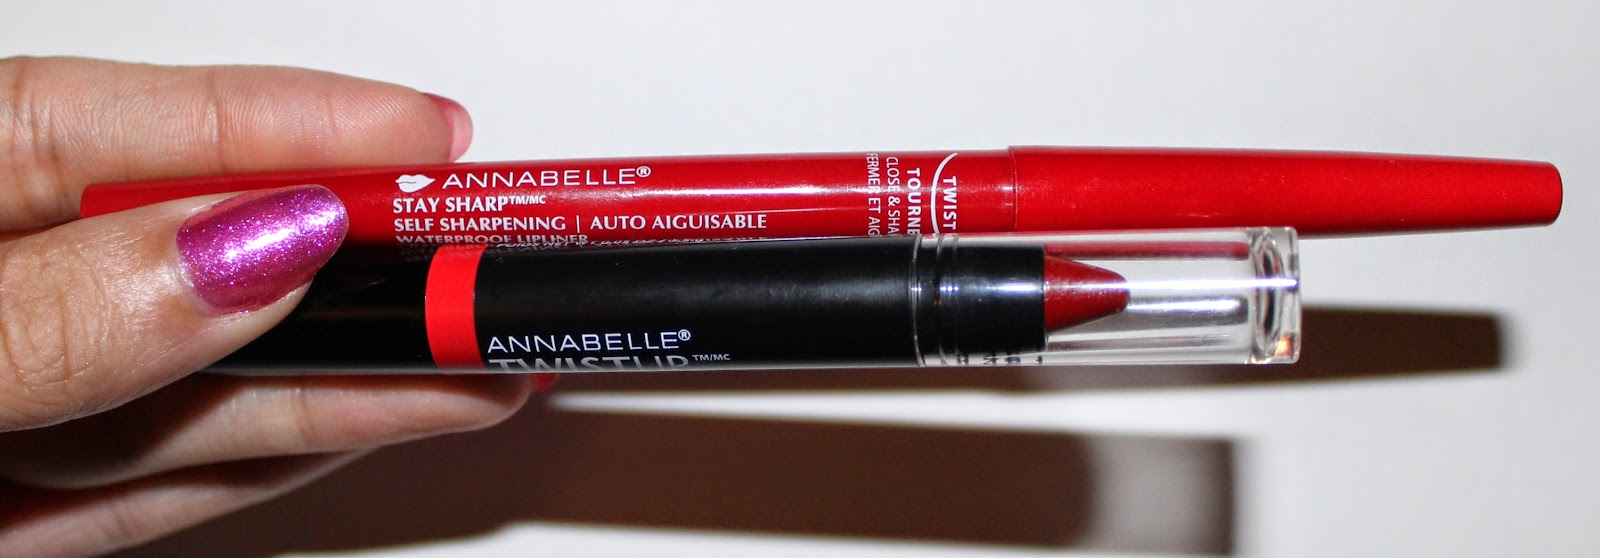 Annabelle Red Lip Products